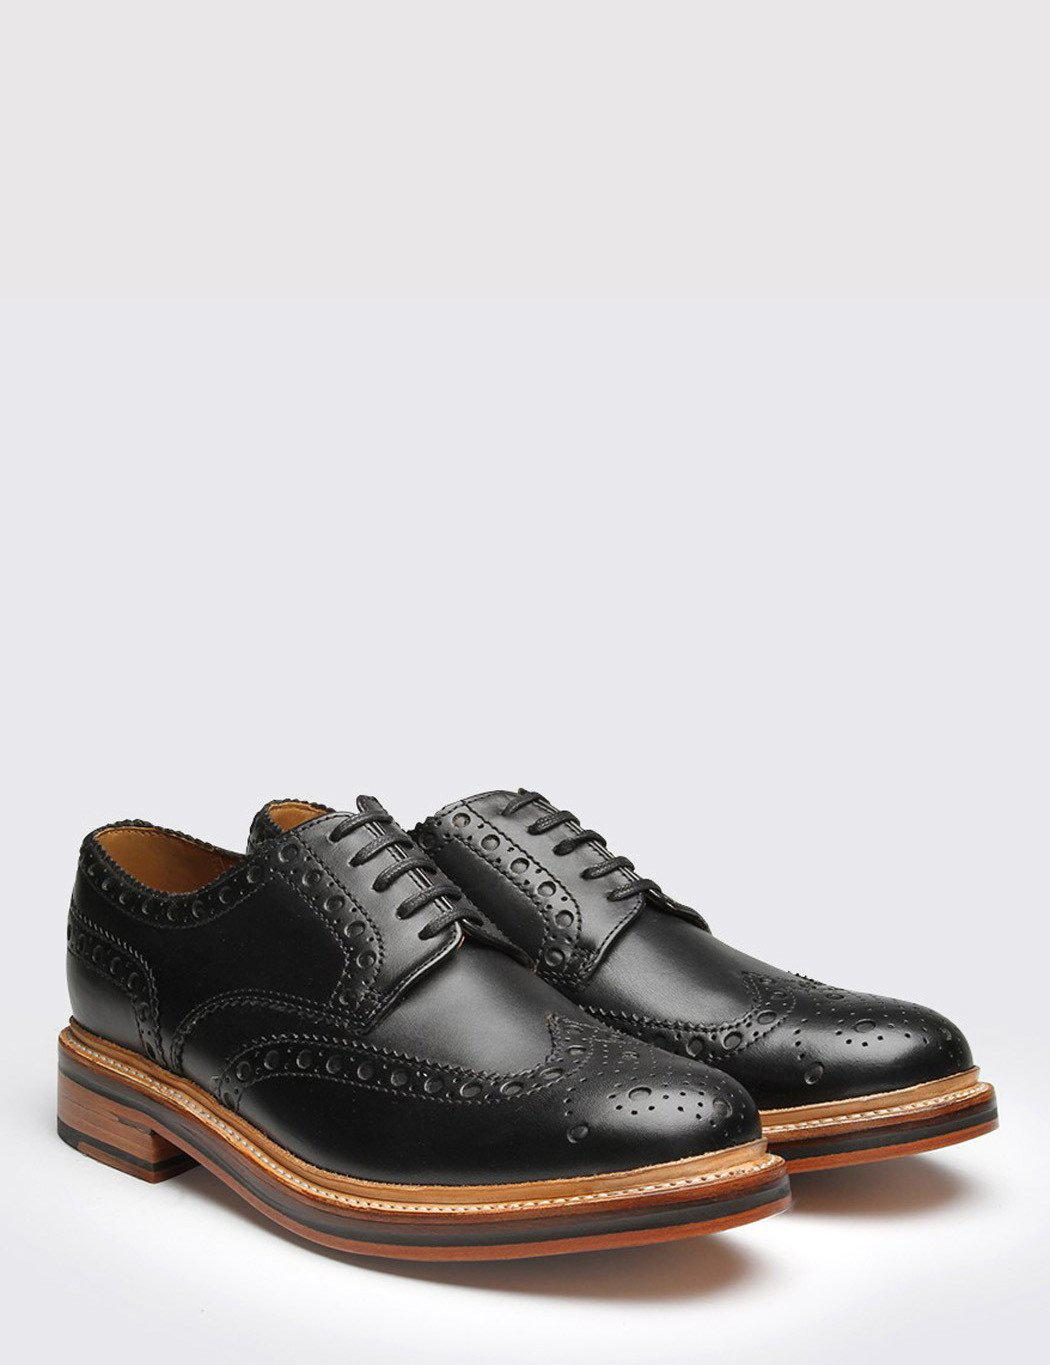 52437e27e0 Grenson Black Leather Archie Brogues in Black for Men - Save 10% - Lyst